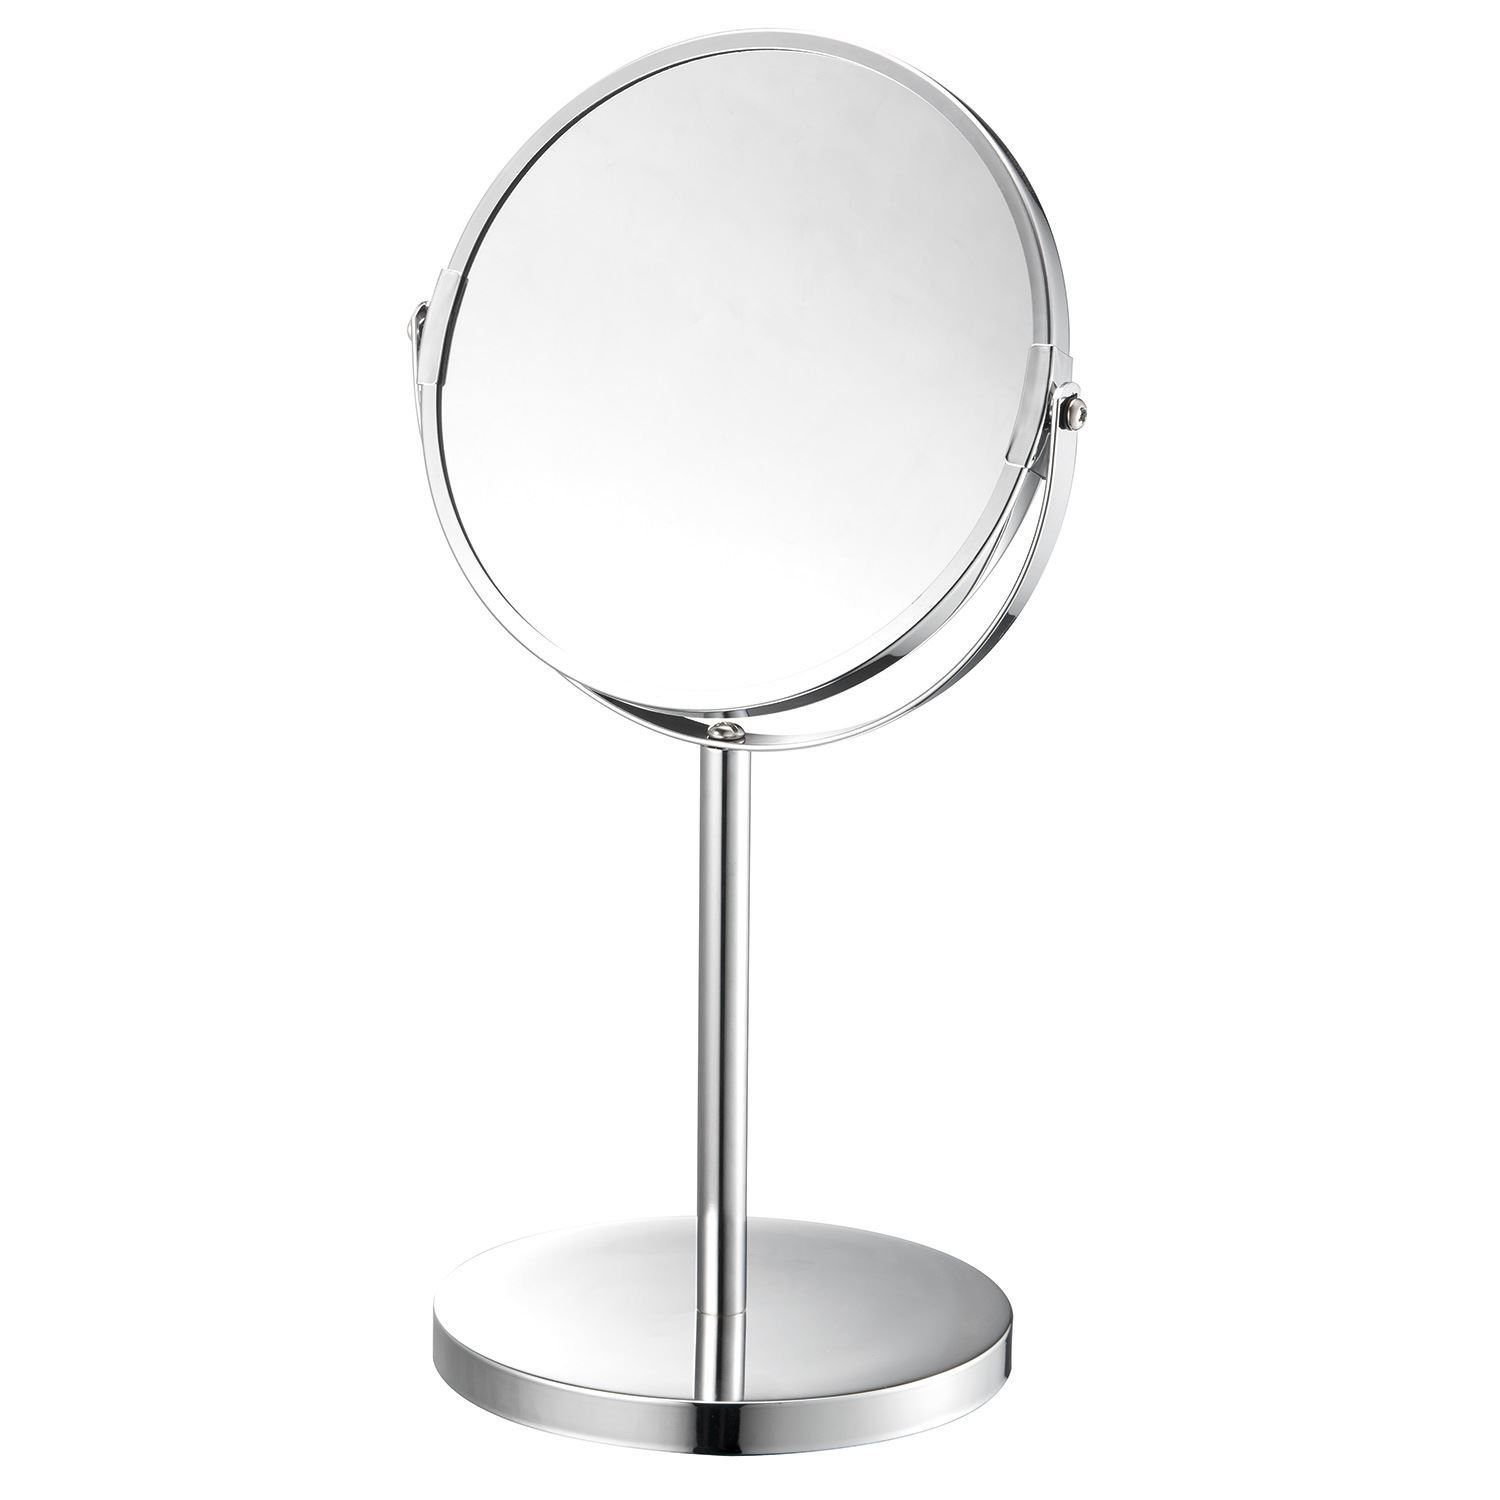 Chrome Magnifying Make Up Cosmetic Shaving Vanity Double Sided Swivel Mirror